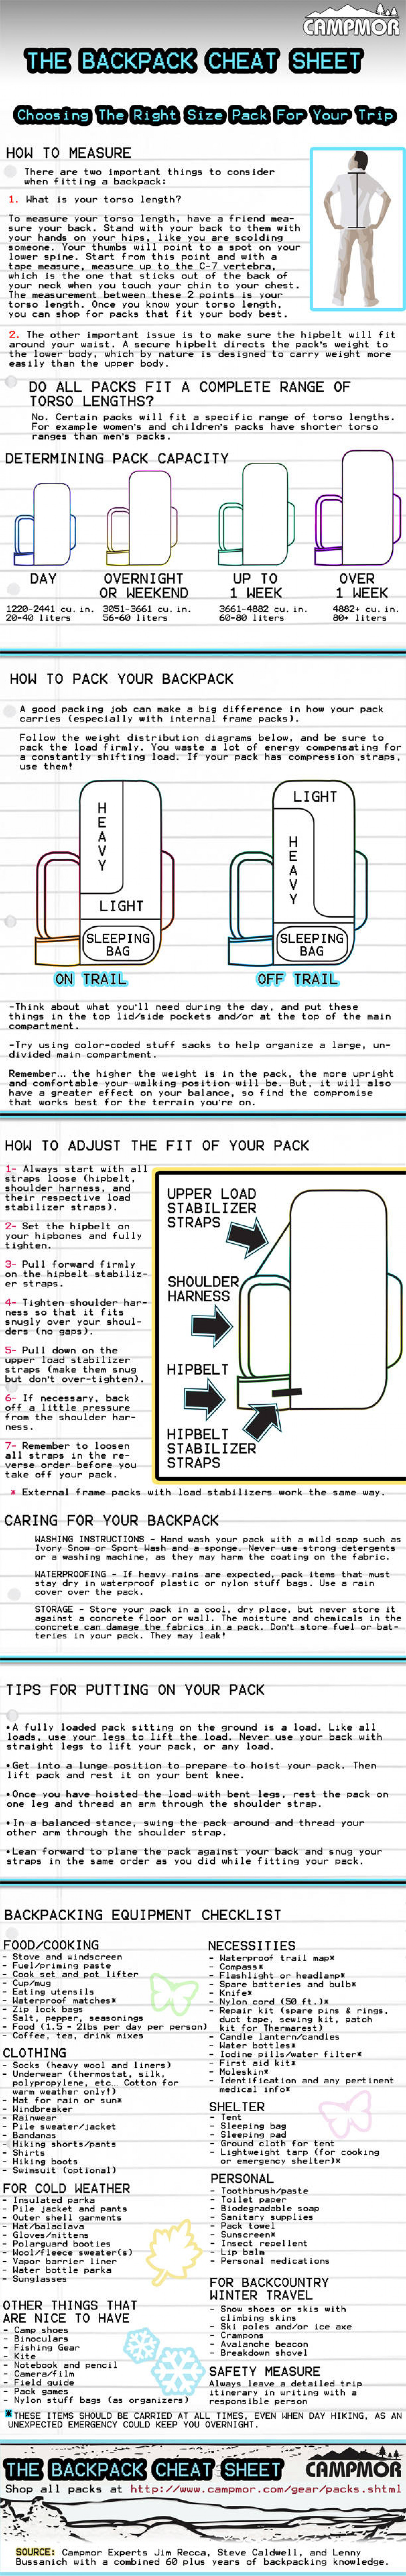 Backpack Cheat Sheet Infographic